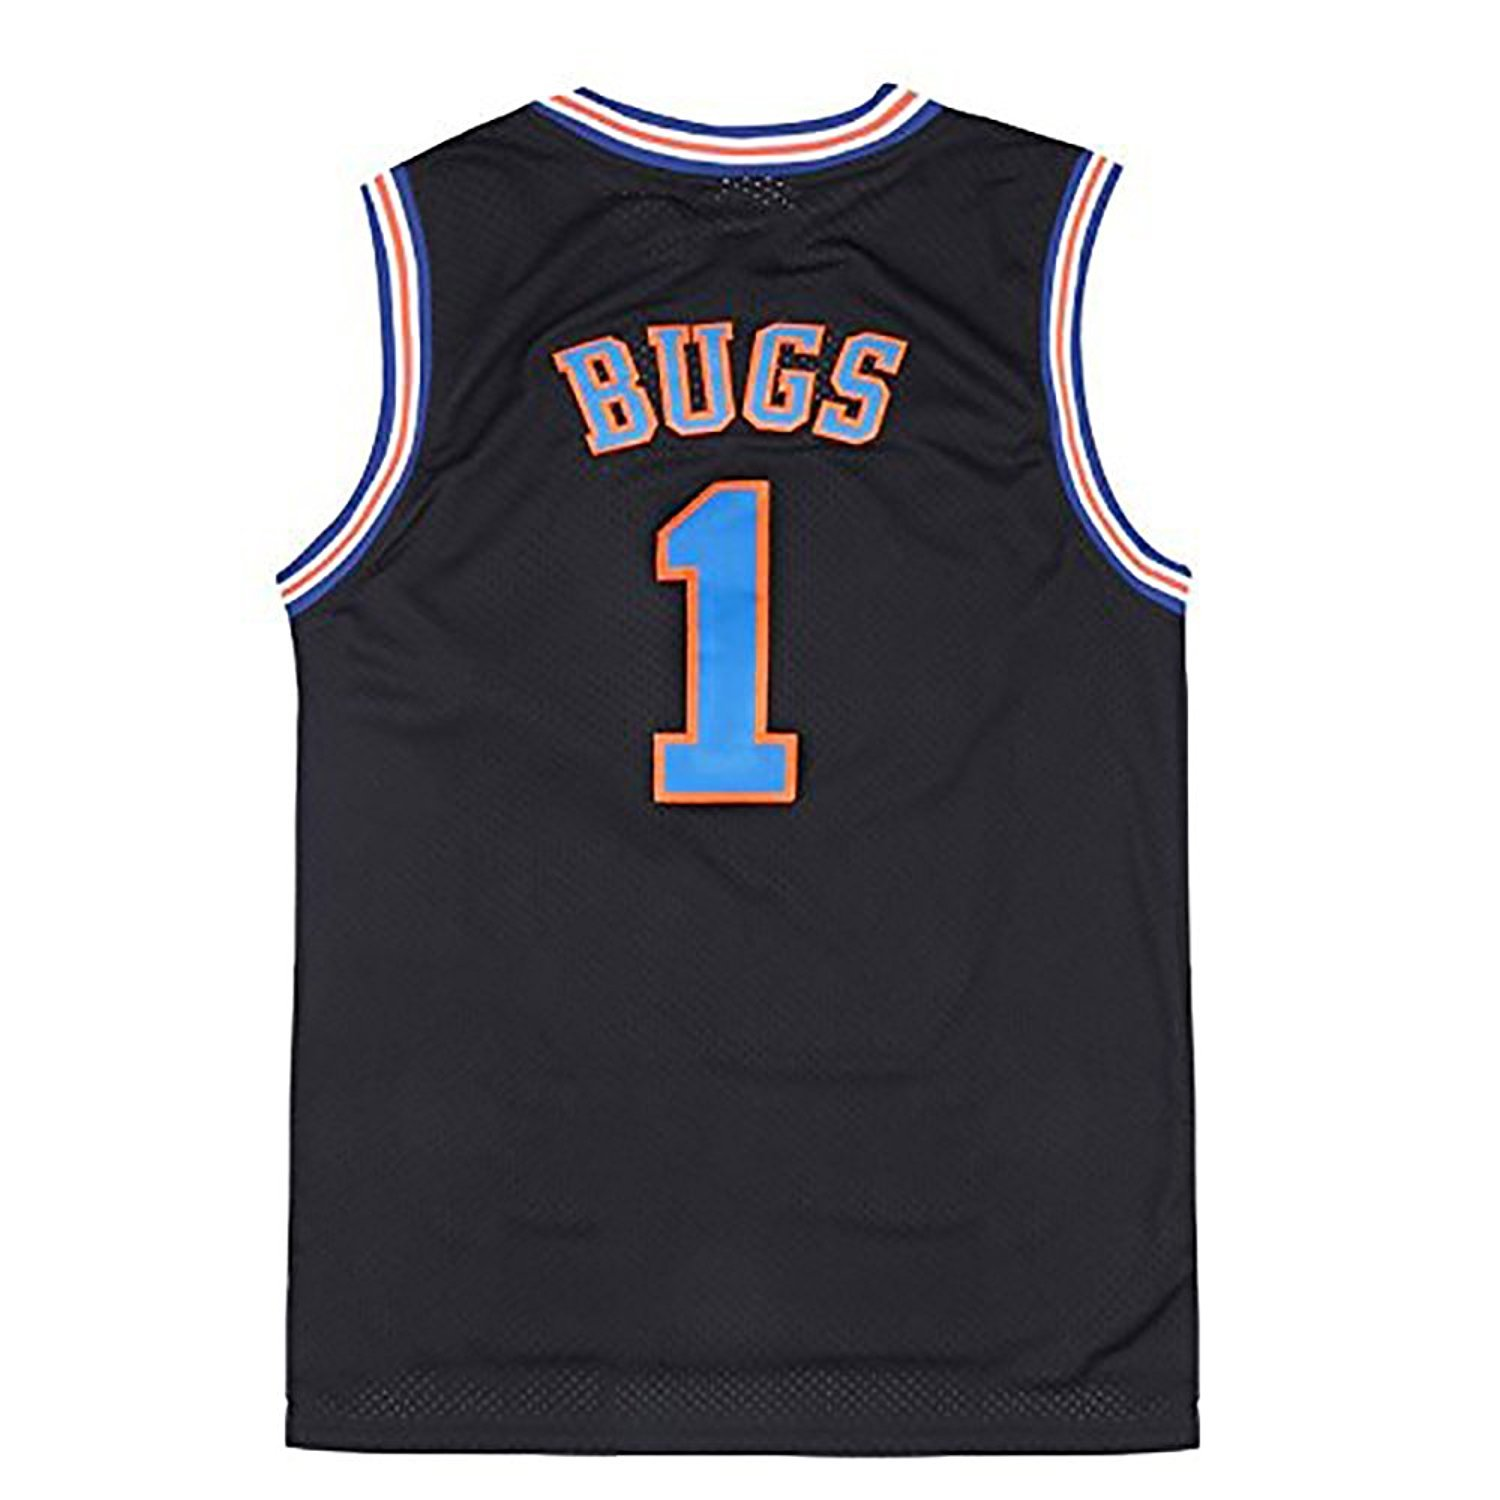 492398c99dc Mens Basketball Jersey Bugs Bunny #1 Space Jam Jersey White/Black product  image